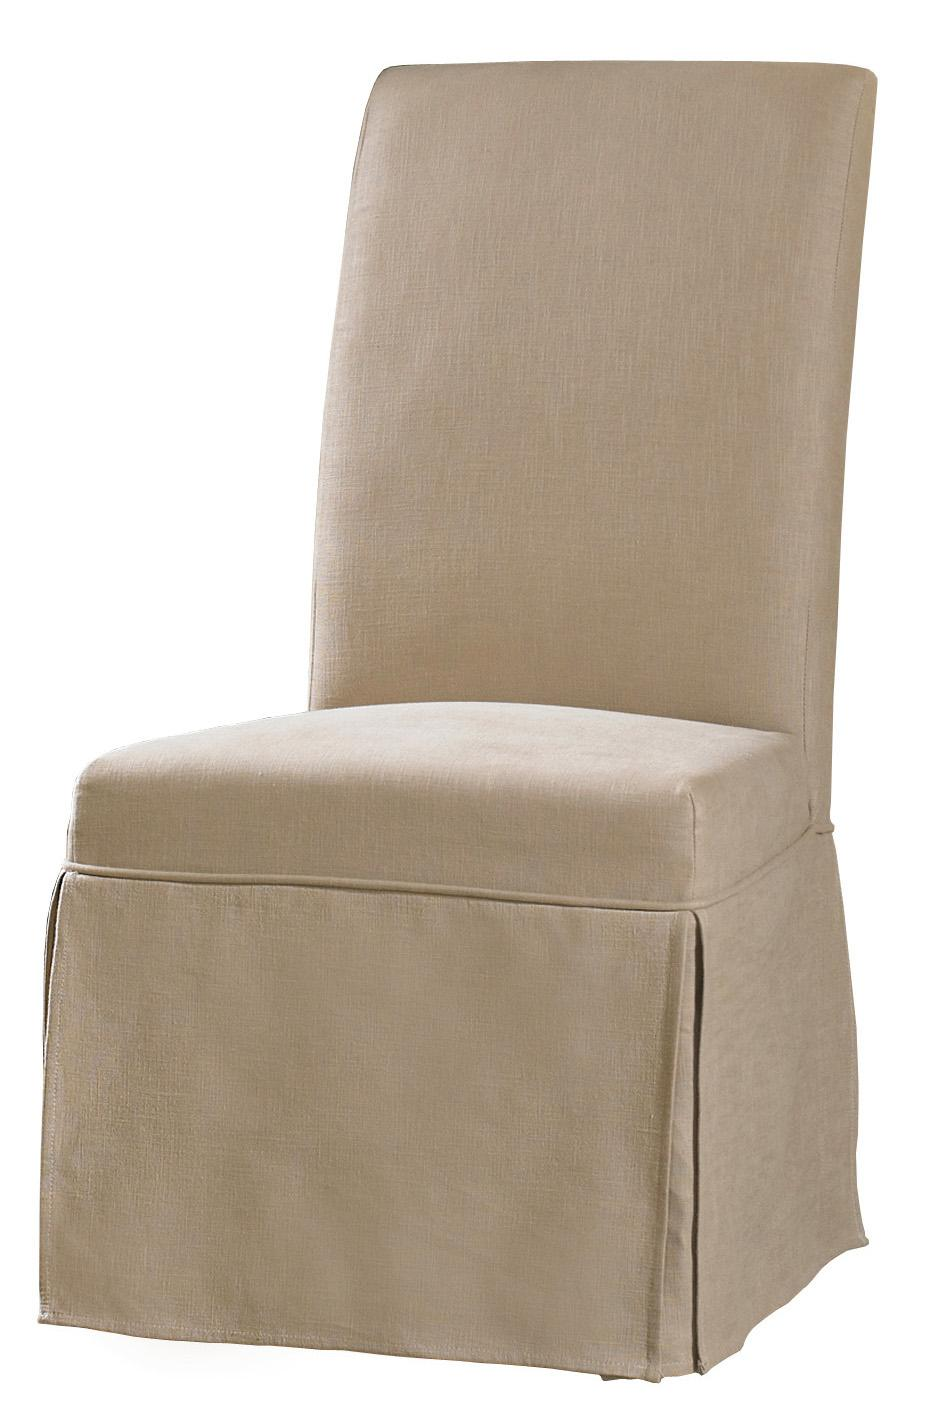 Hamilton Home Decorator Chairs Clarice Skirted Chair - Item Number: 200-36-072